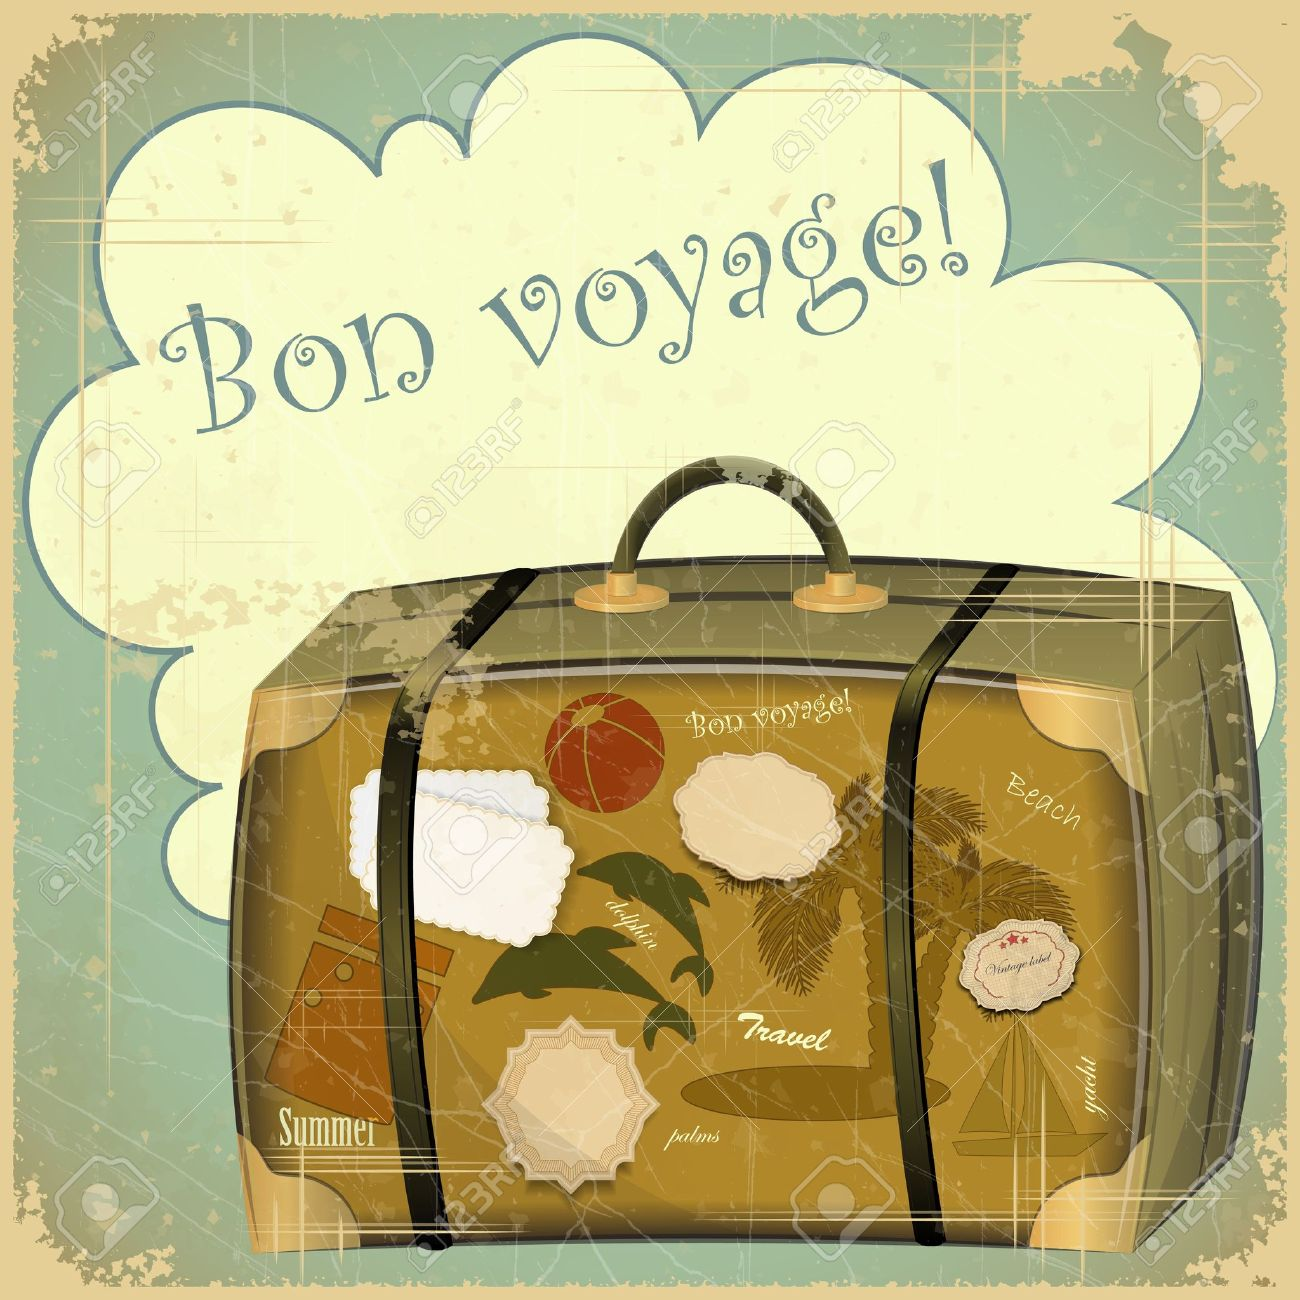 Retro Summer Postcard - Travel Suitcase Royalty Free Cliparts ...